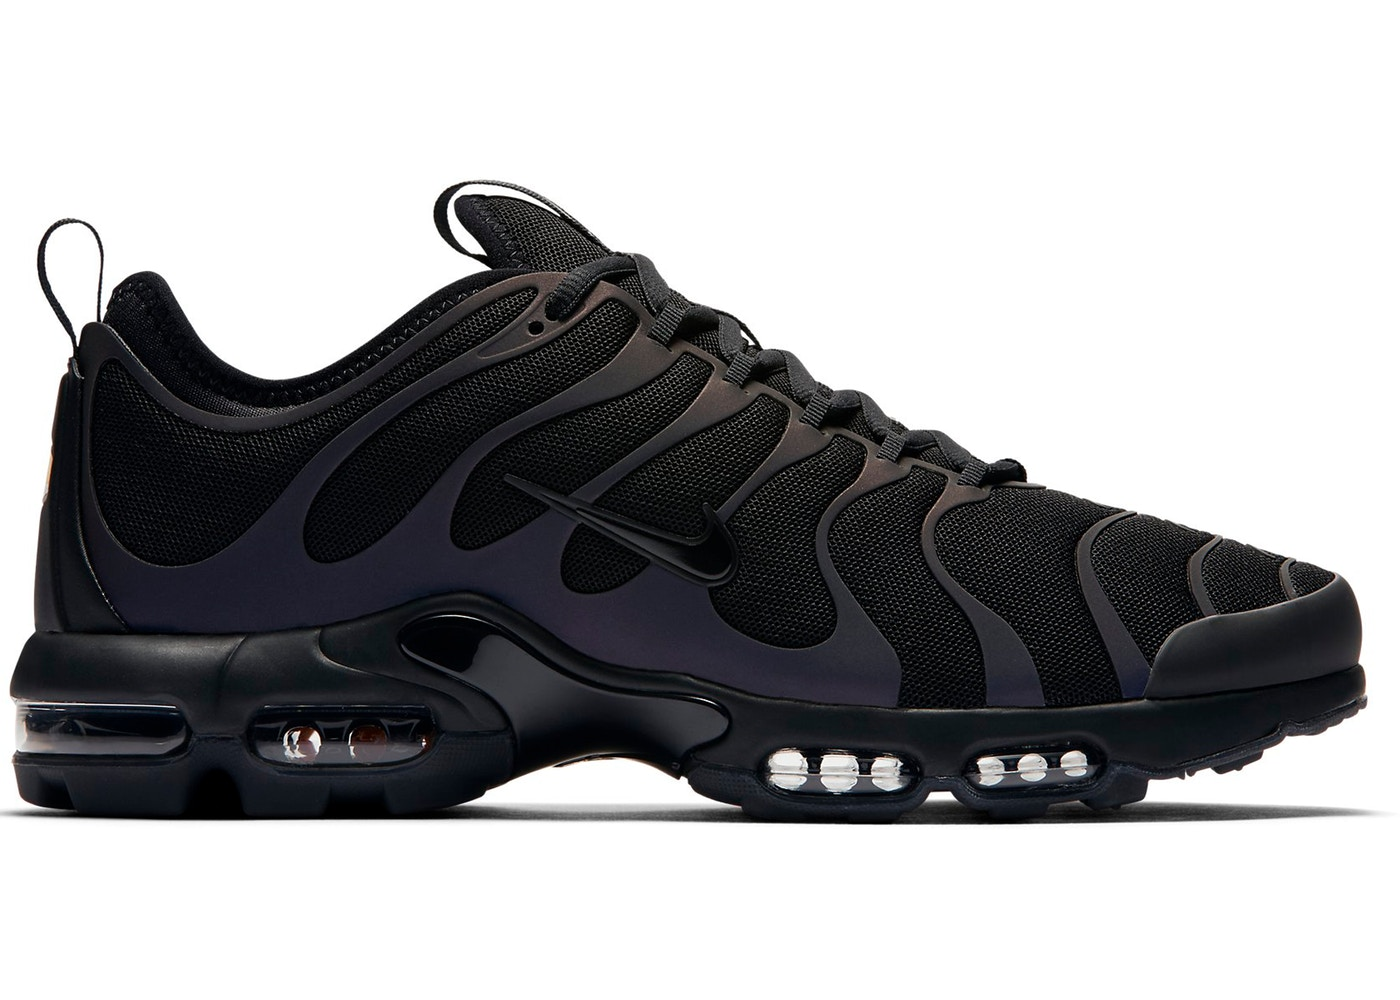 13ae357a012 Air Max Plus TN Ultra Triple Black - 898015-002